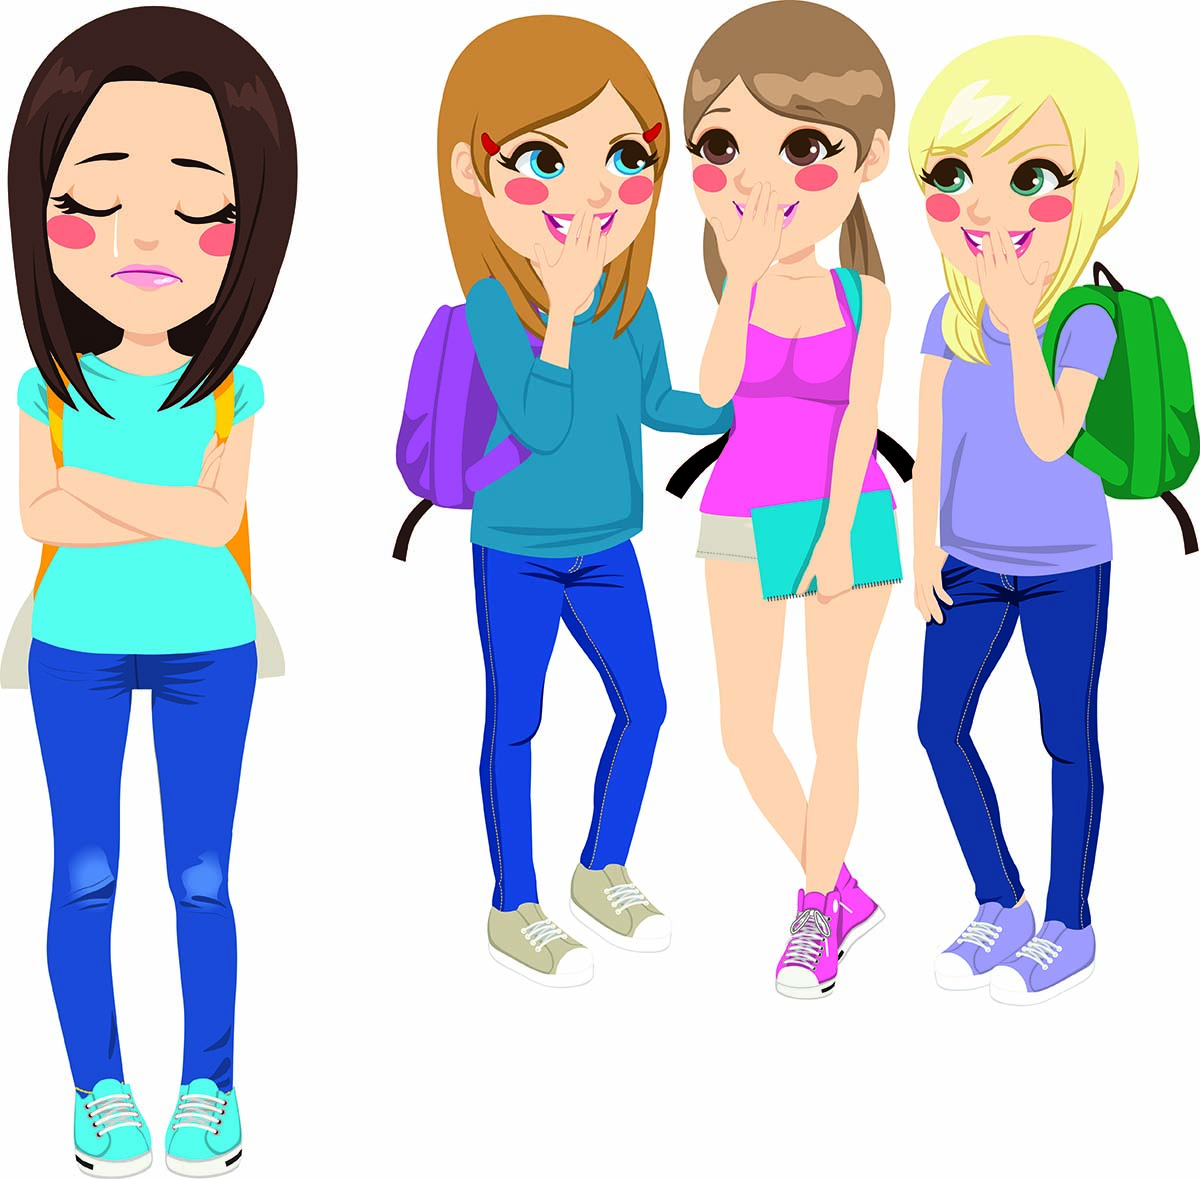 Relational what is it. Bully clipart social bullying